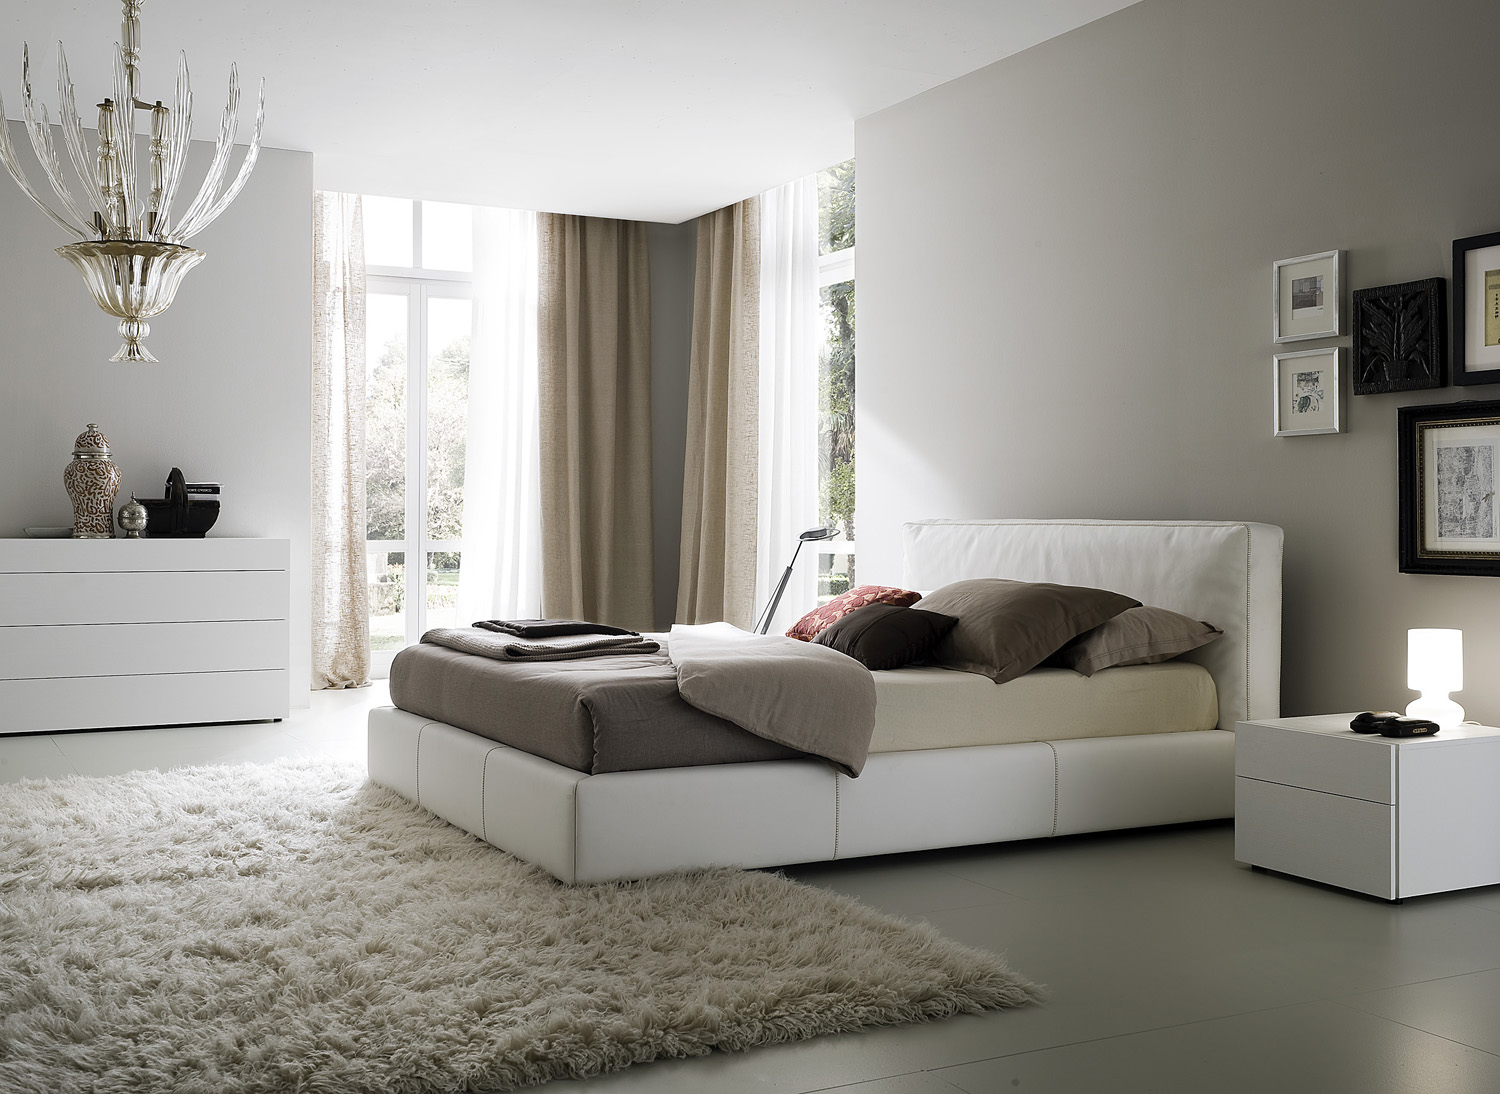 Bedroom decorating ideas from evinco for Bedroom ideas pictures